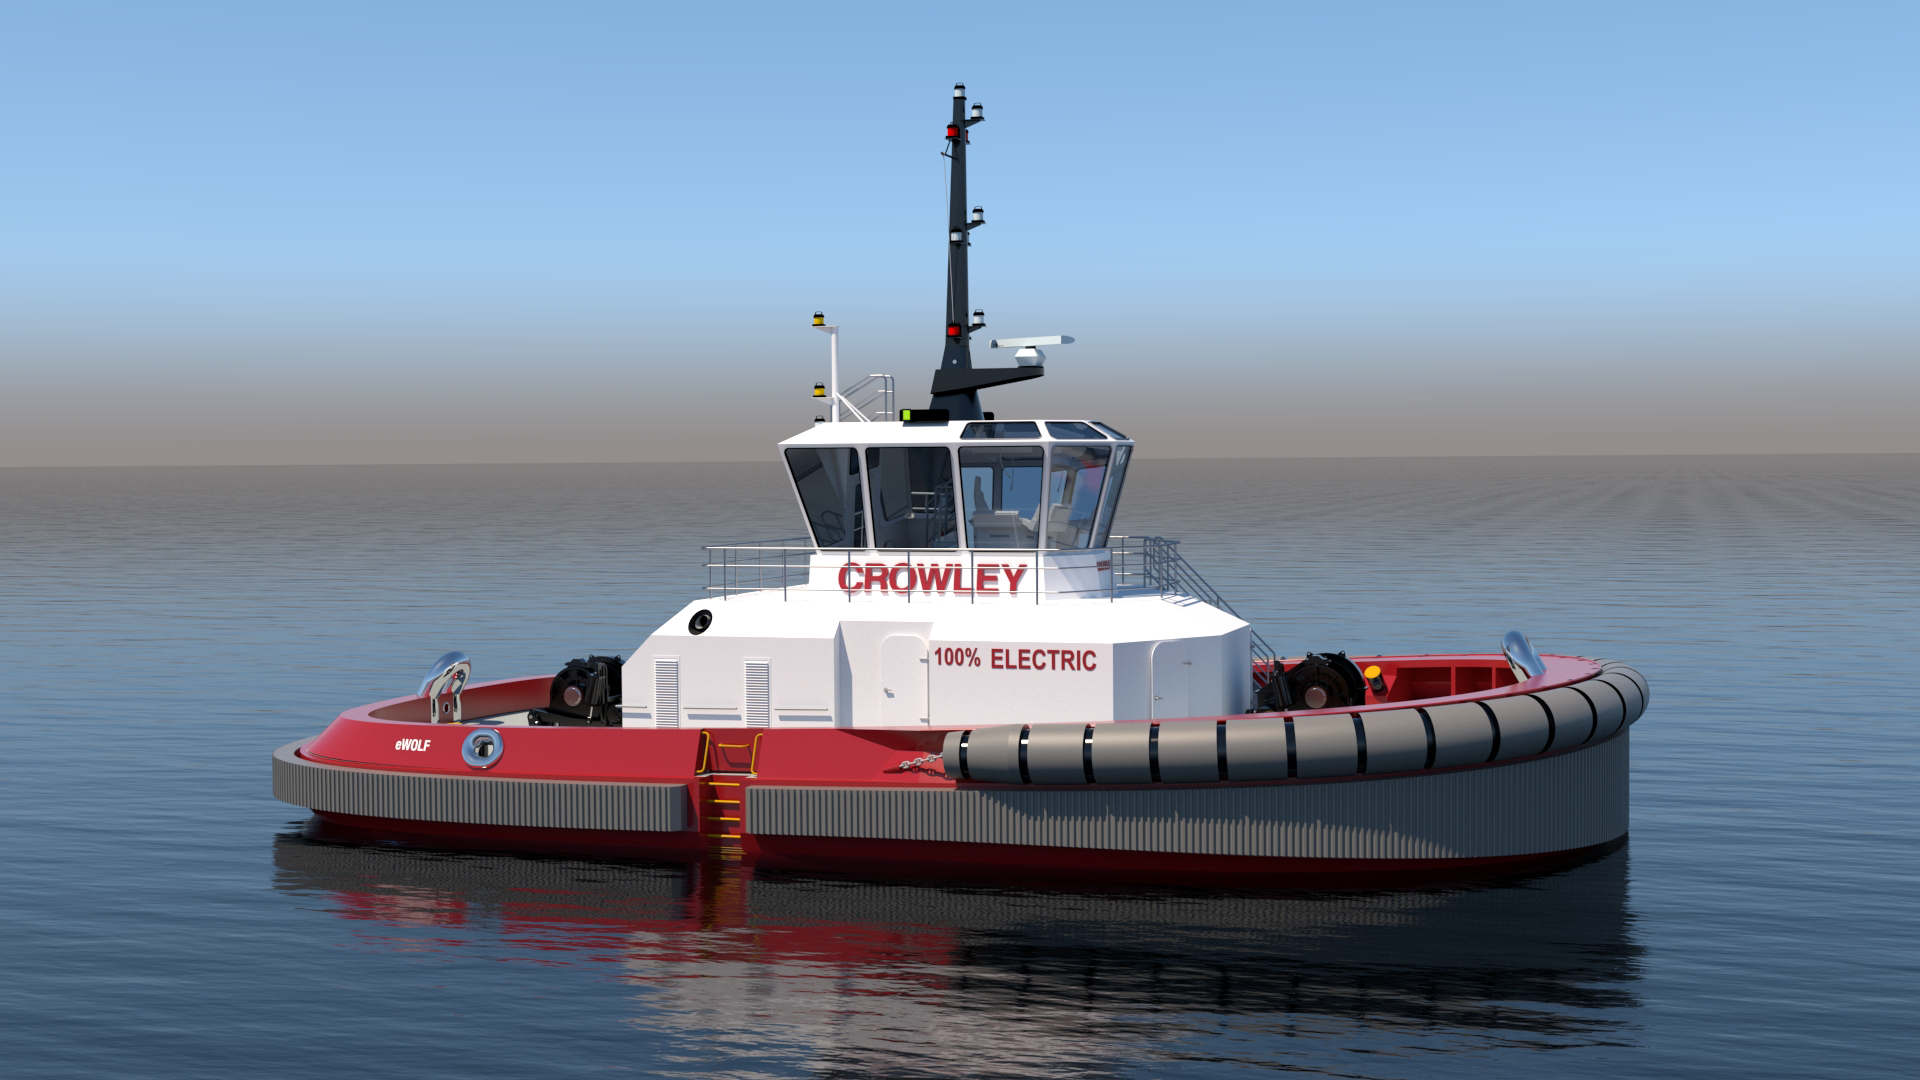 Crowley to build and operate the first fully electric US tugboat